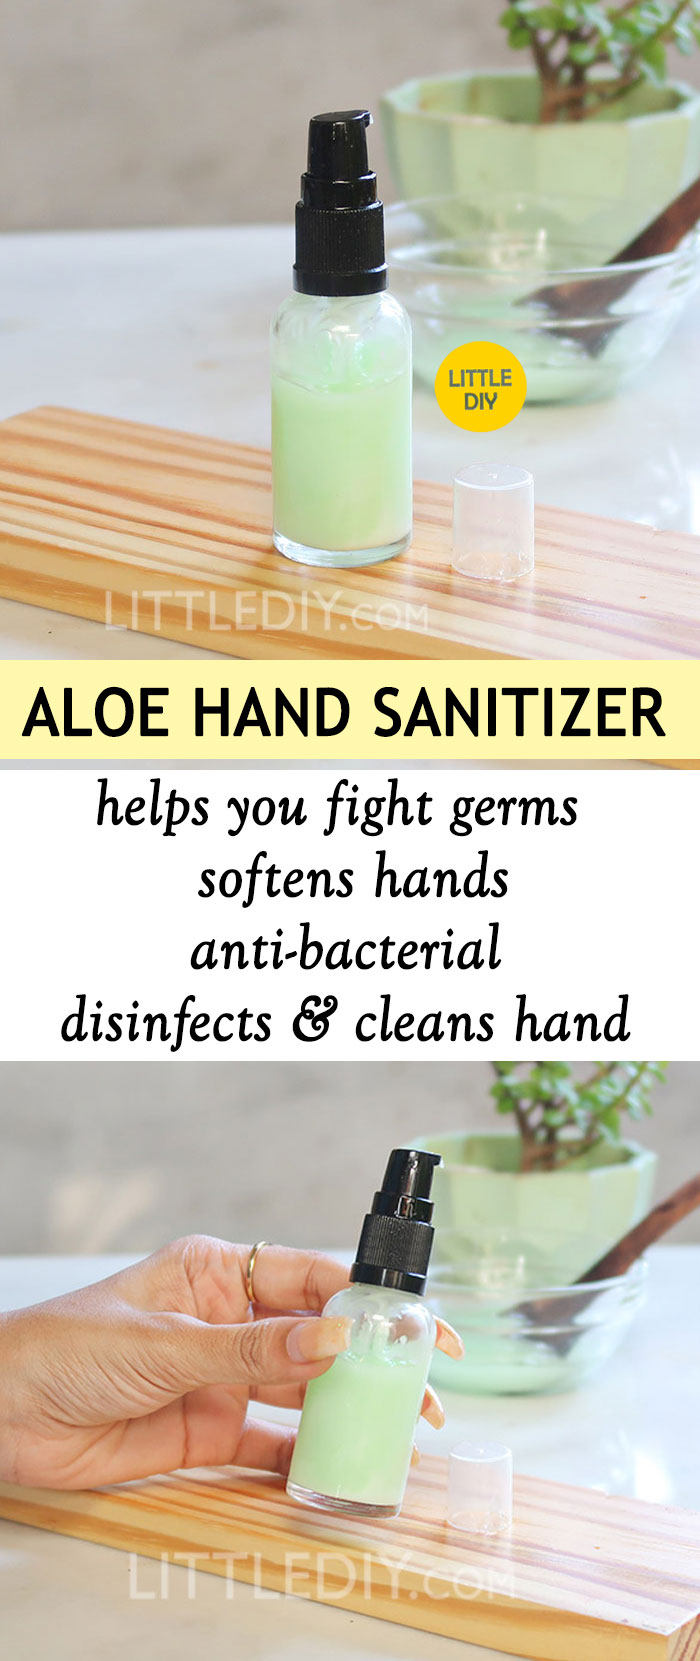 Photo of HOMEMADE NATURAL ALOE VERA HAND SANITIZER